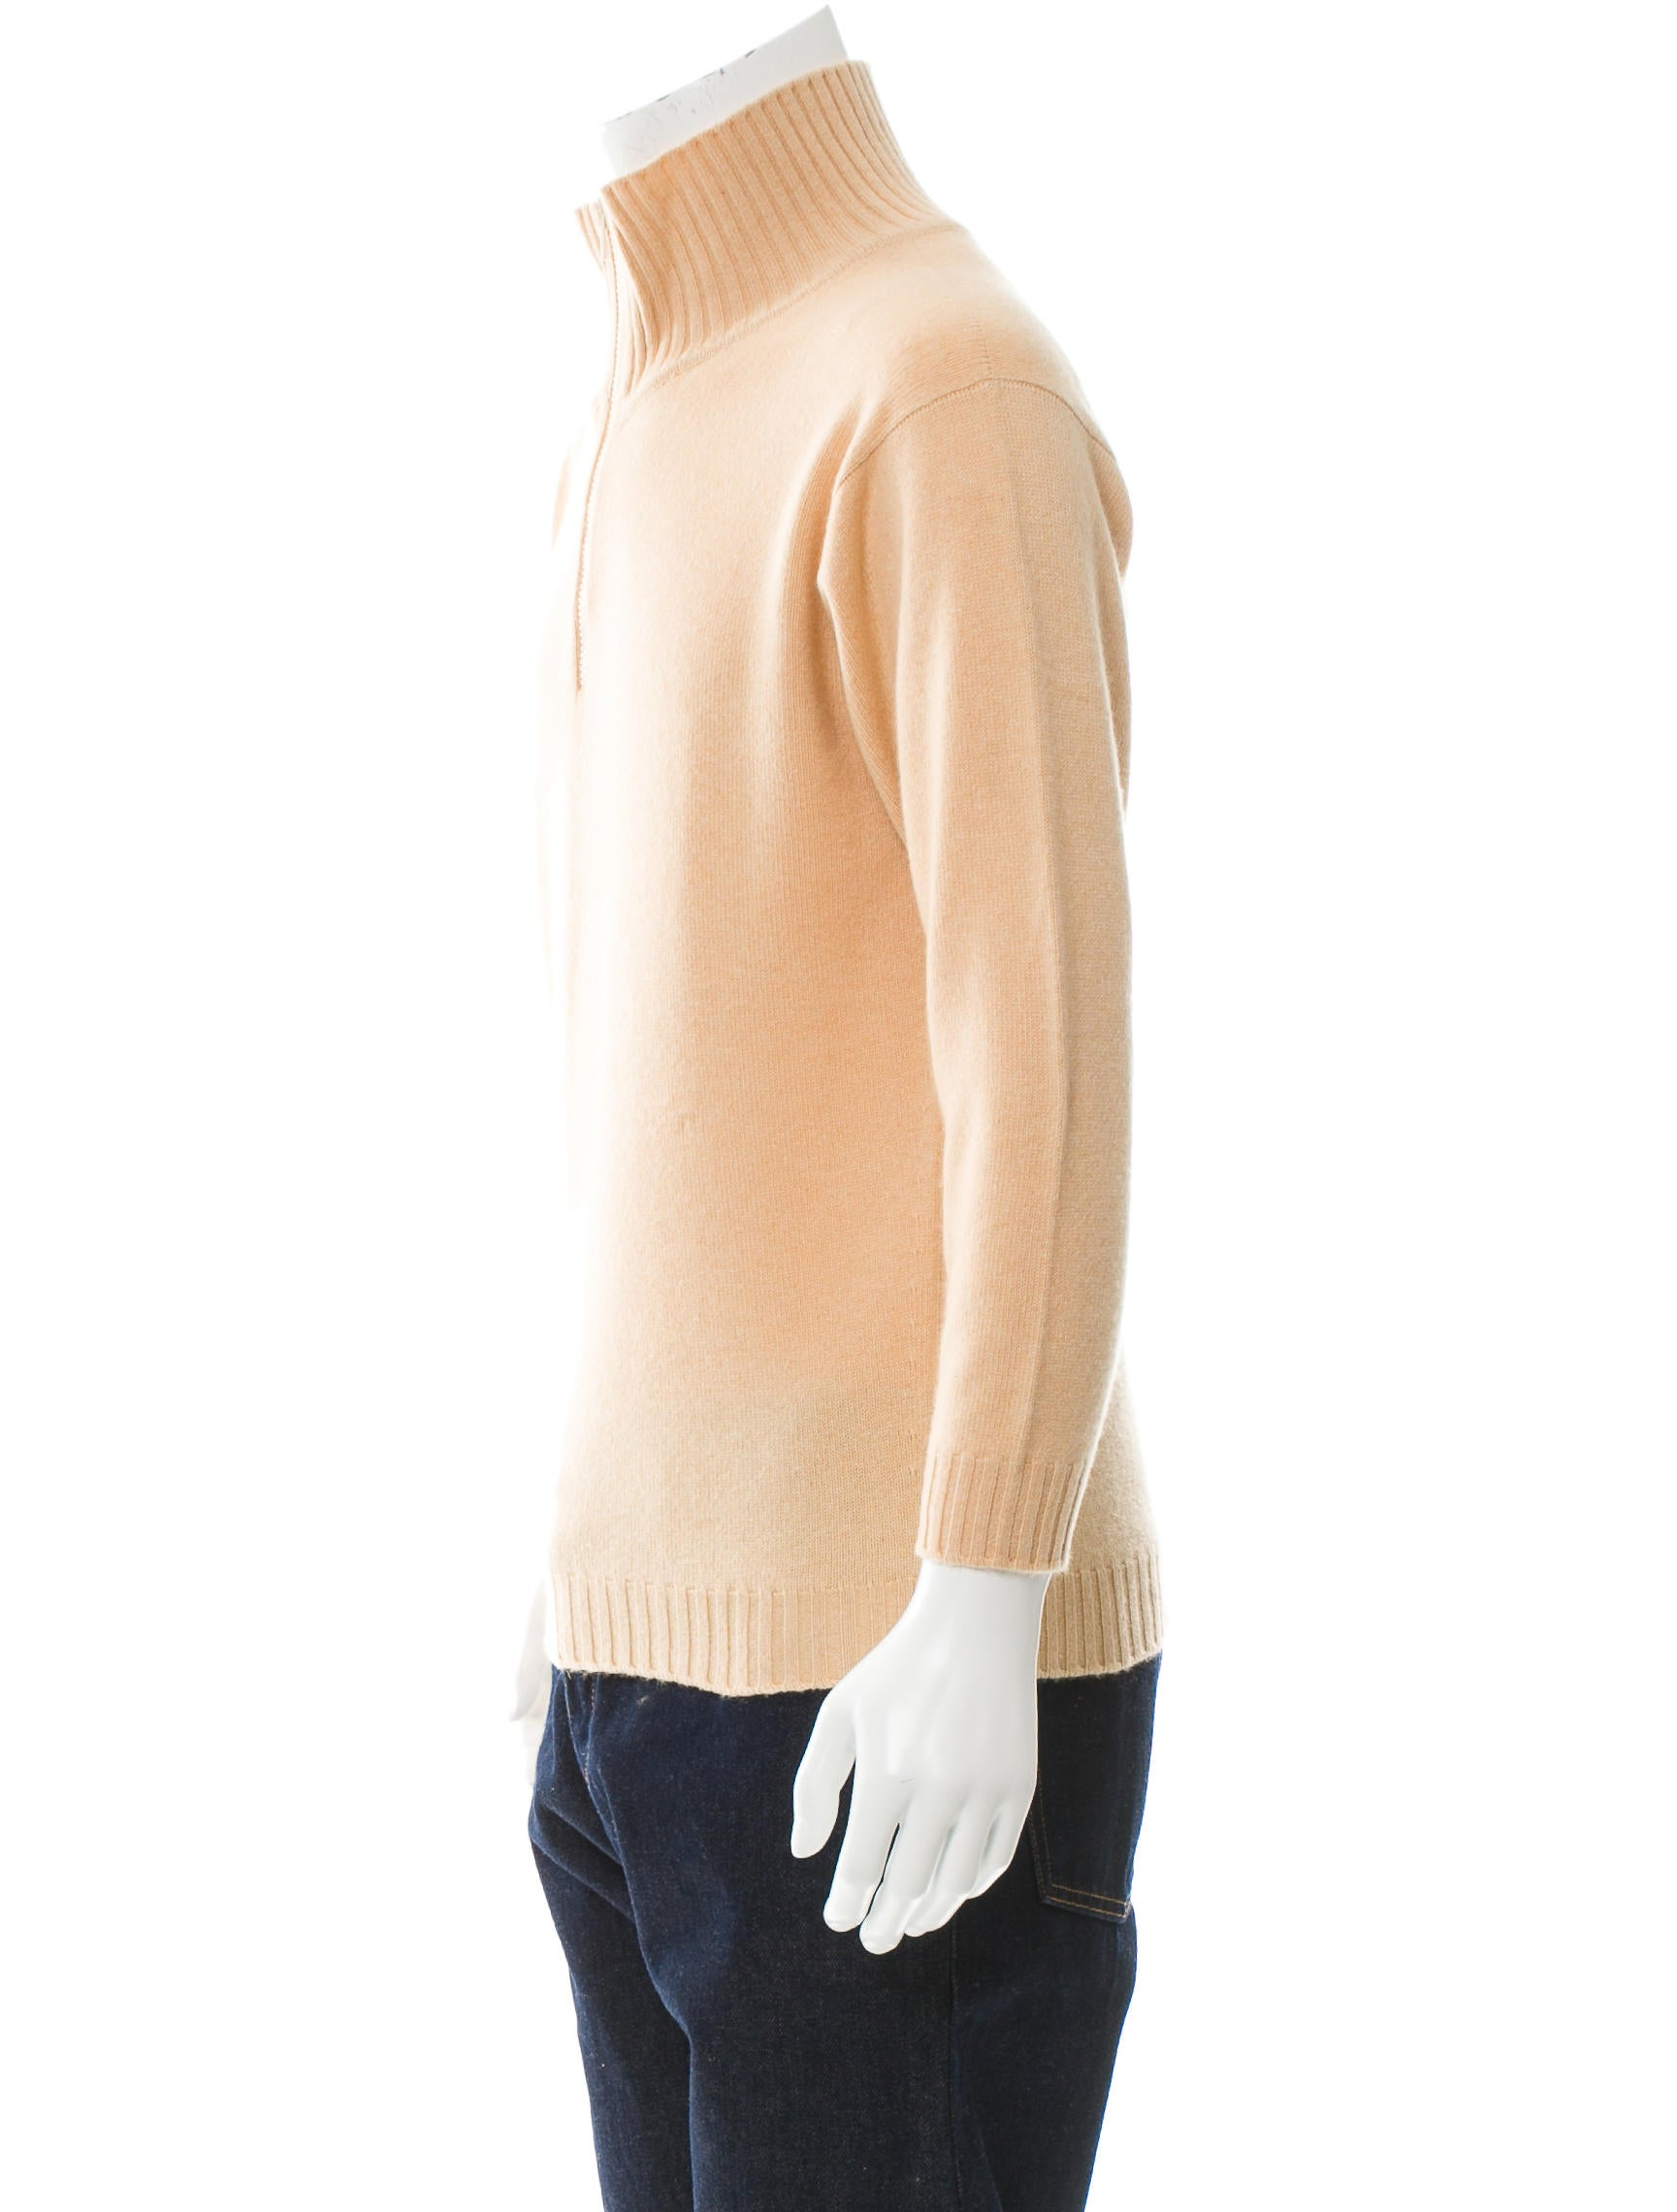 Ballantyne Cashmere Half-Zip Sweater - Clothing - WBLTY20001 | The RealReal